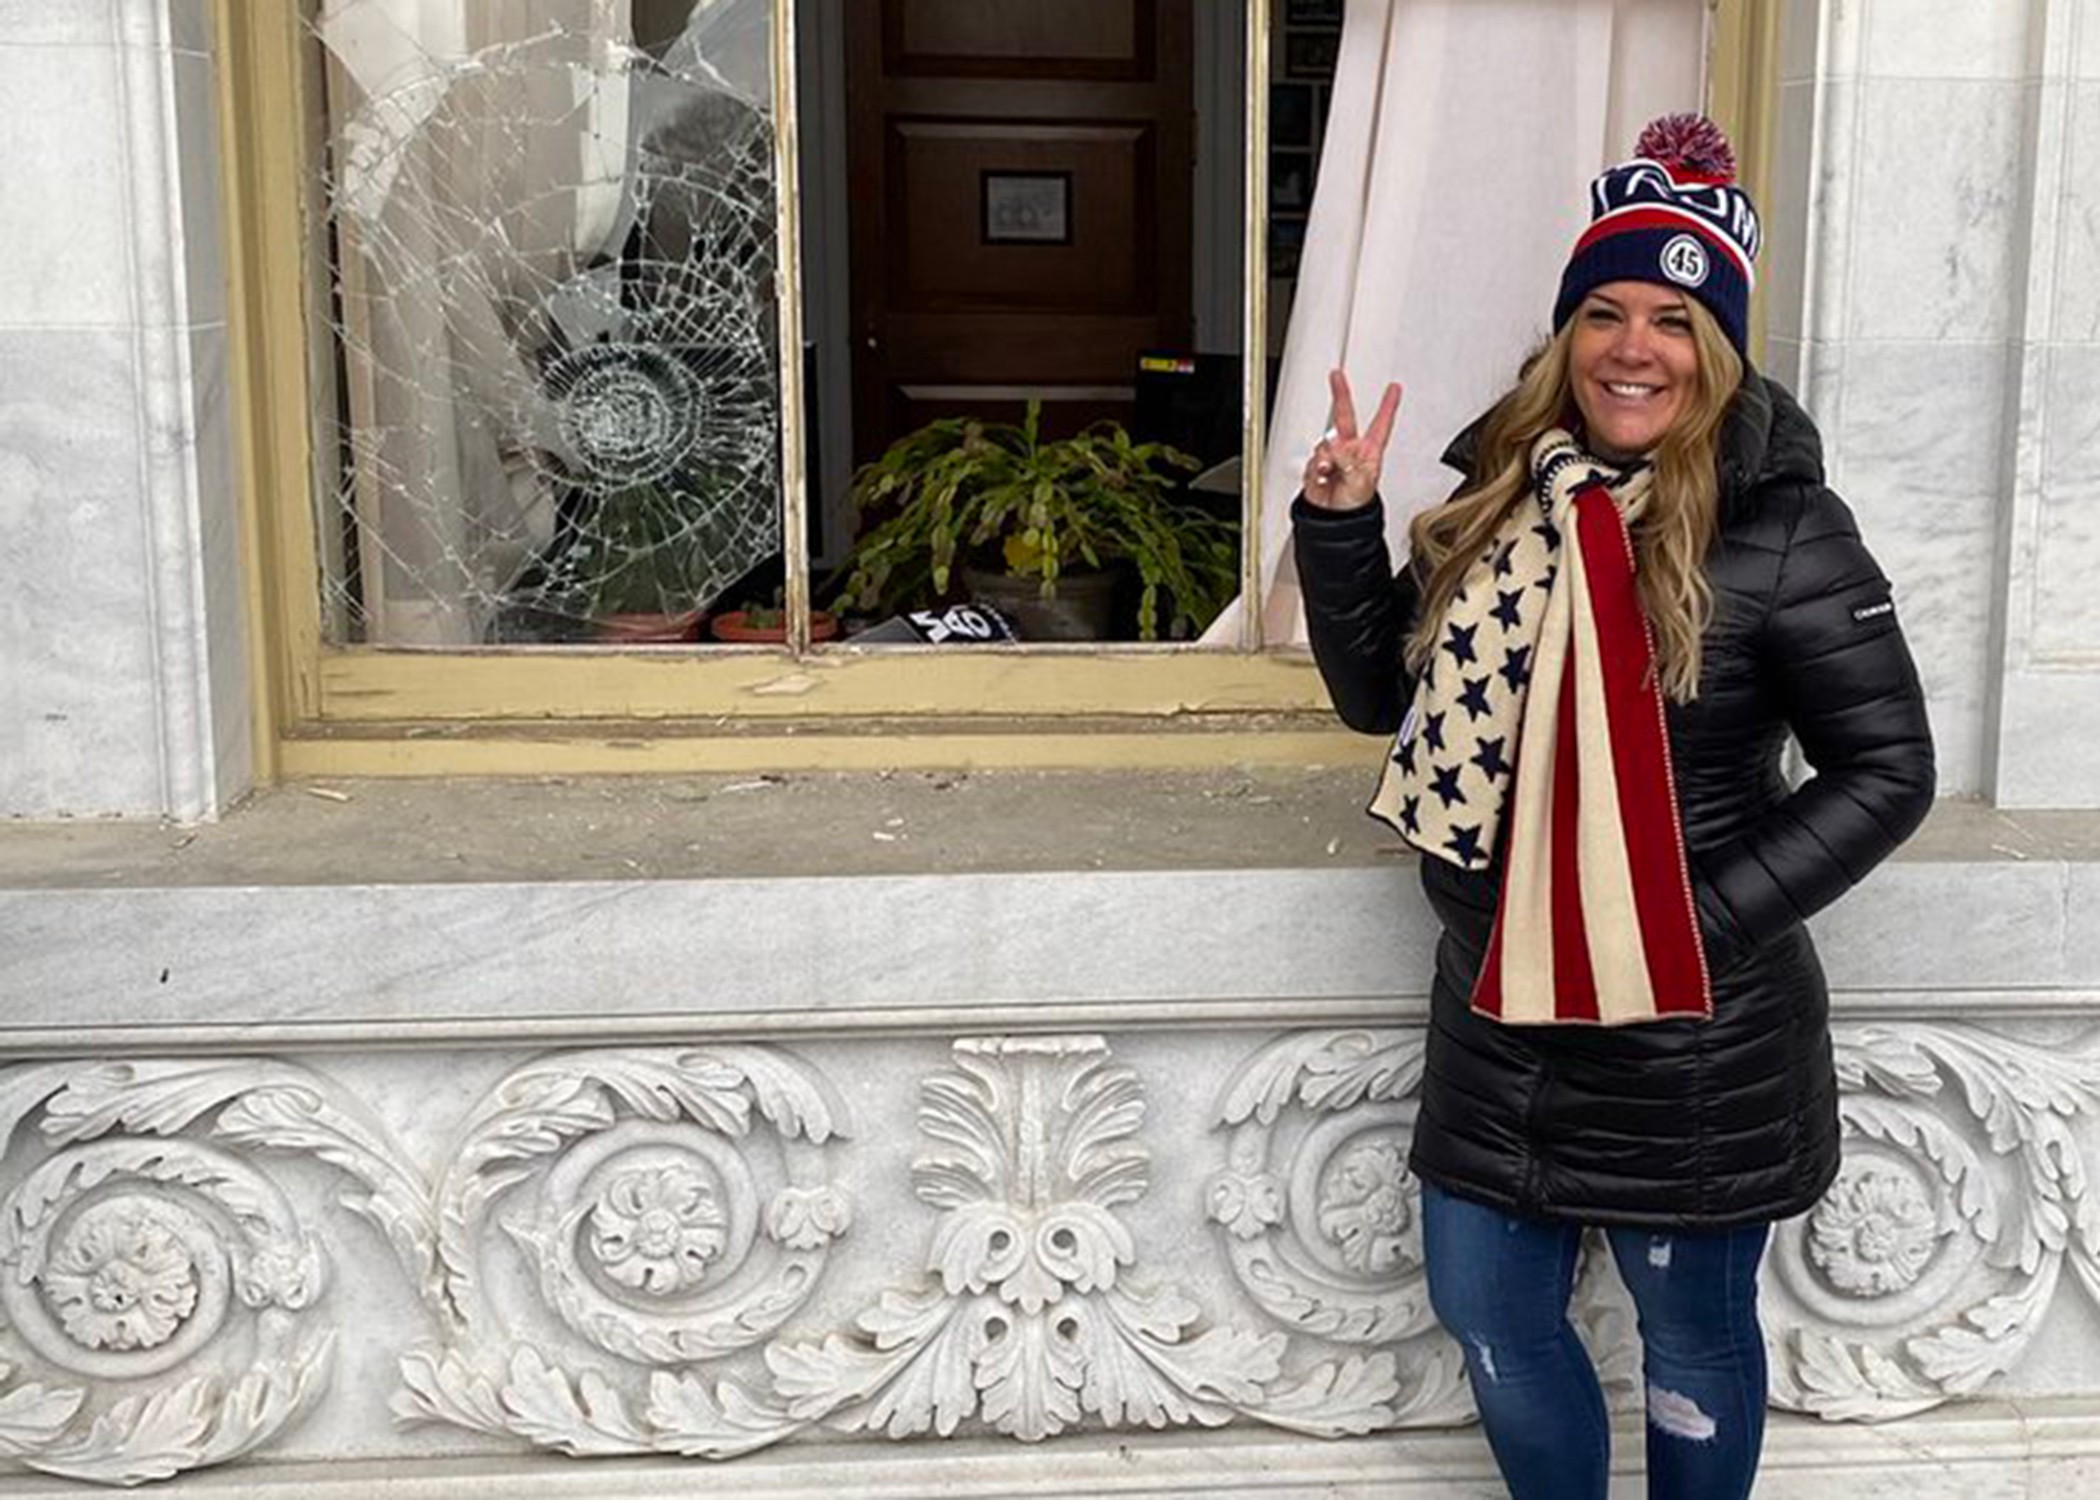 Image from the Twitter account of @DotJenna showing her flashing a peace sign outside a broken Capitol building window.